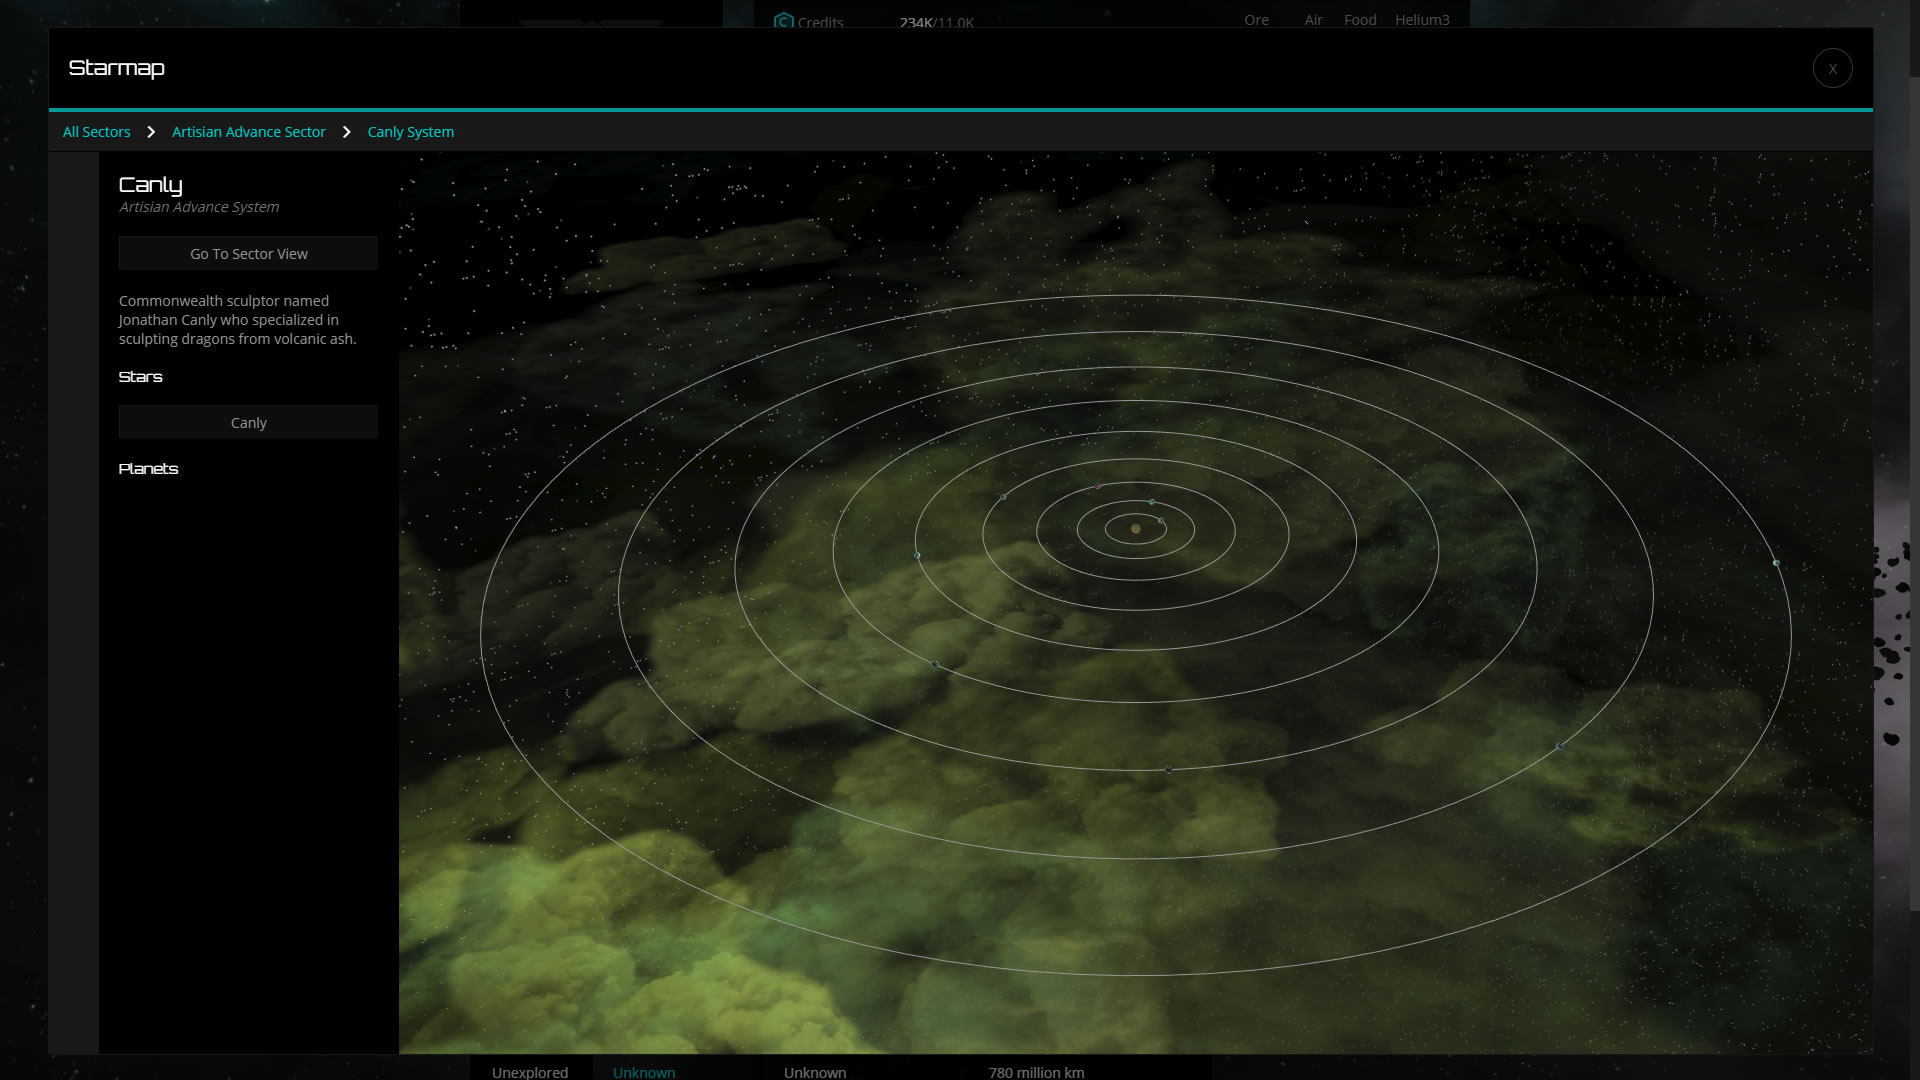 The system view for the starmap.